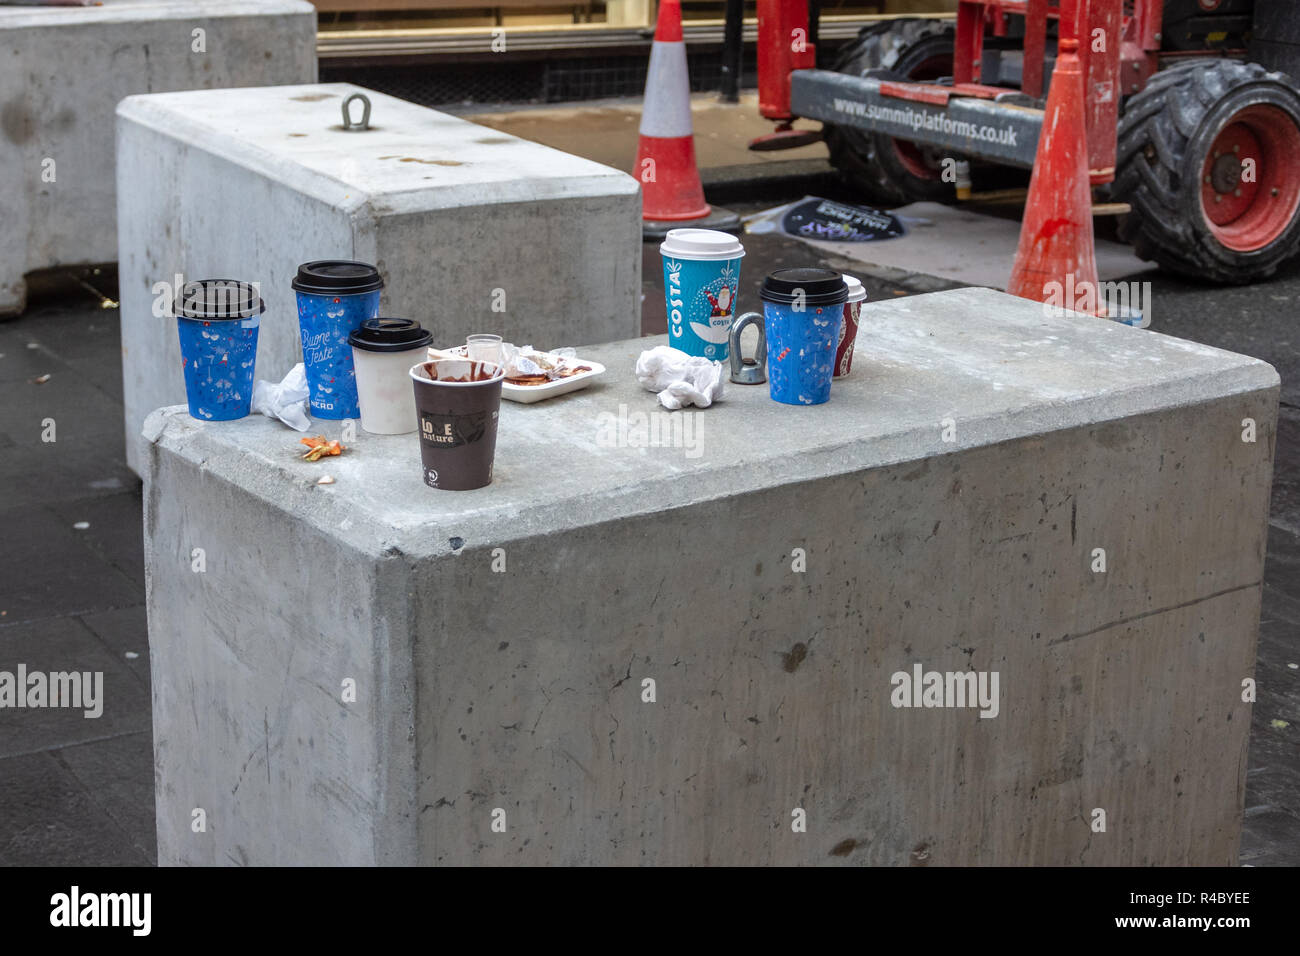 Discarded festive costa disposable cups and food wrappings left as litter on a concrete block in front of cones and machinery from building work - Stock Image